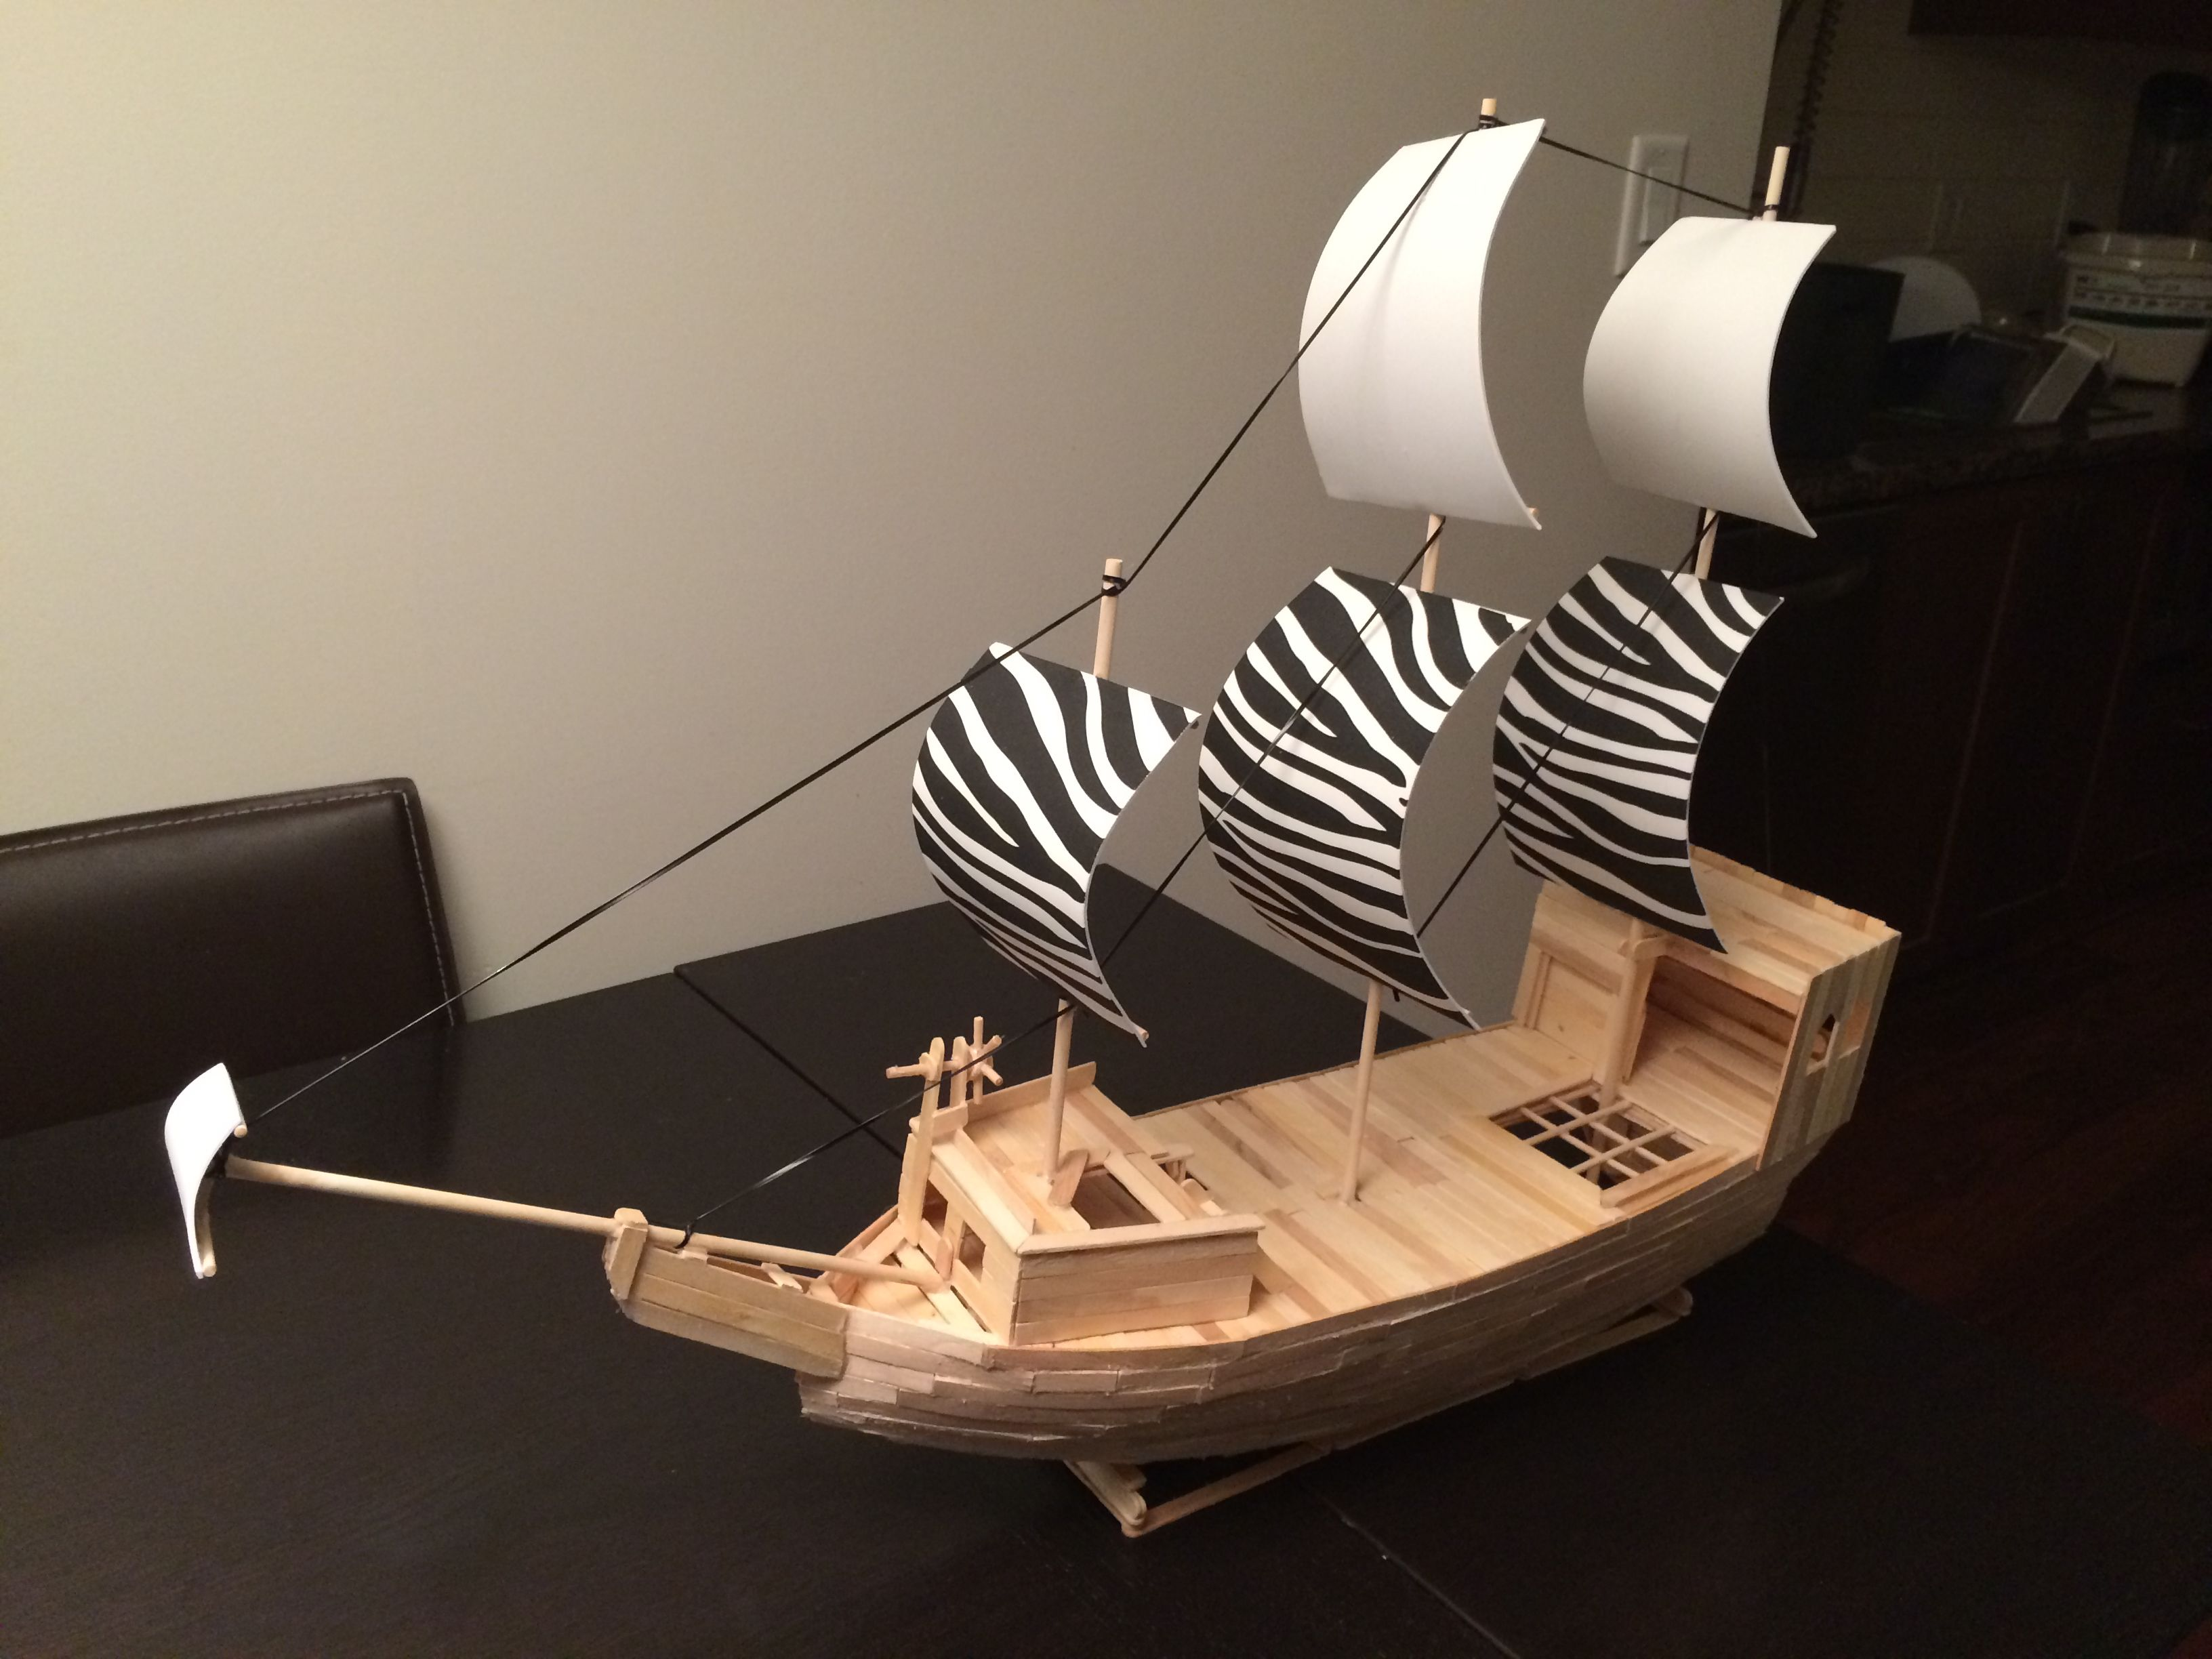 Pirate ship made out of popsicle sticks wooden dowels and What to make out of popsicle sticks